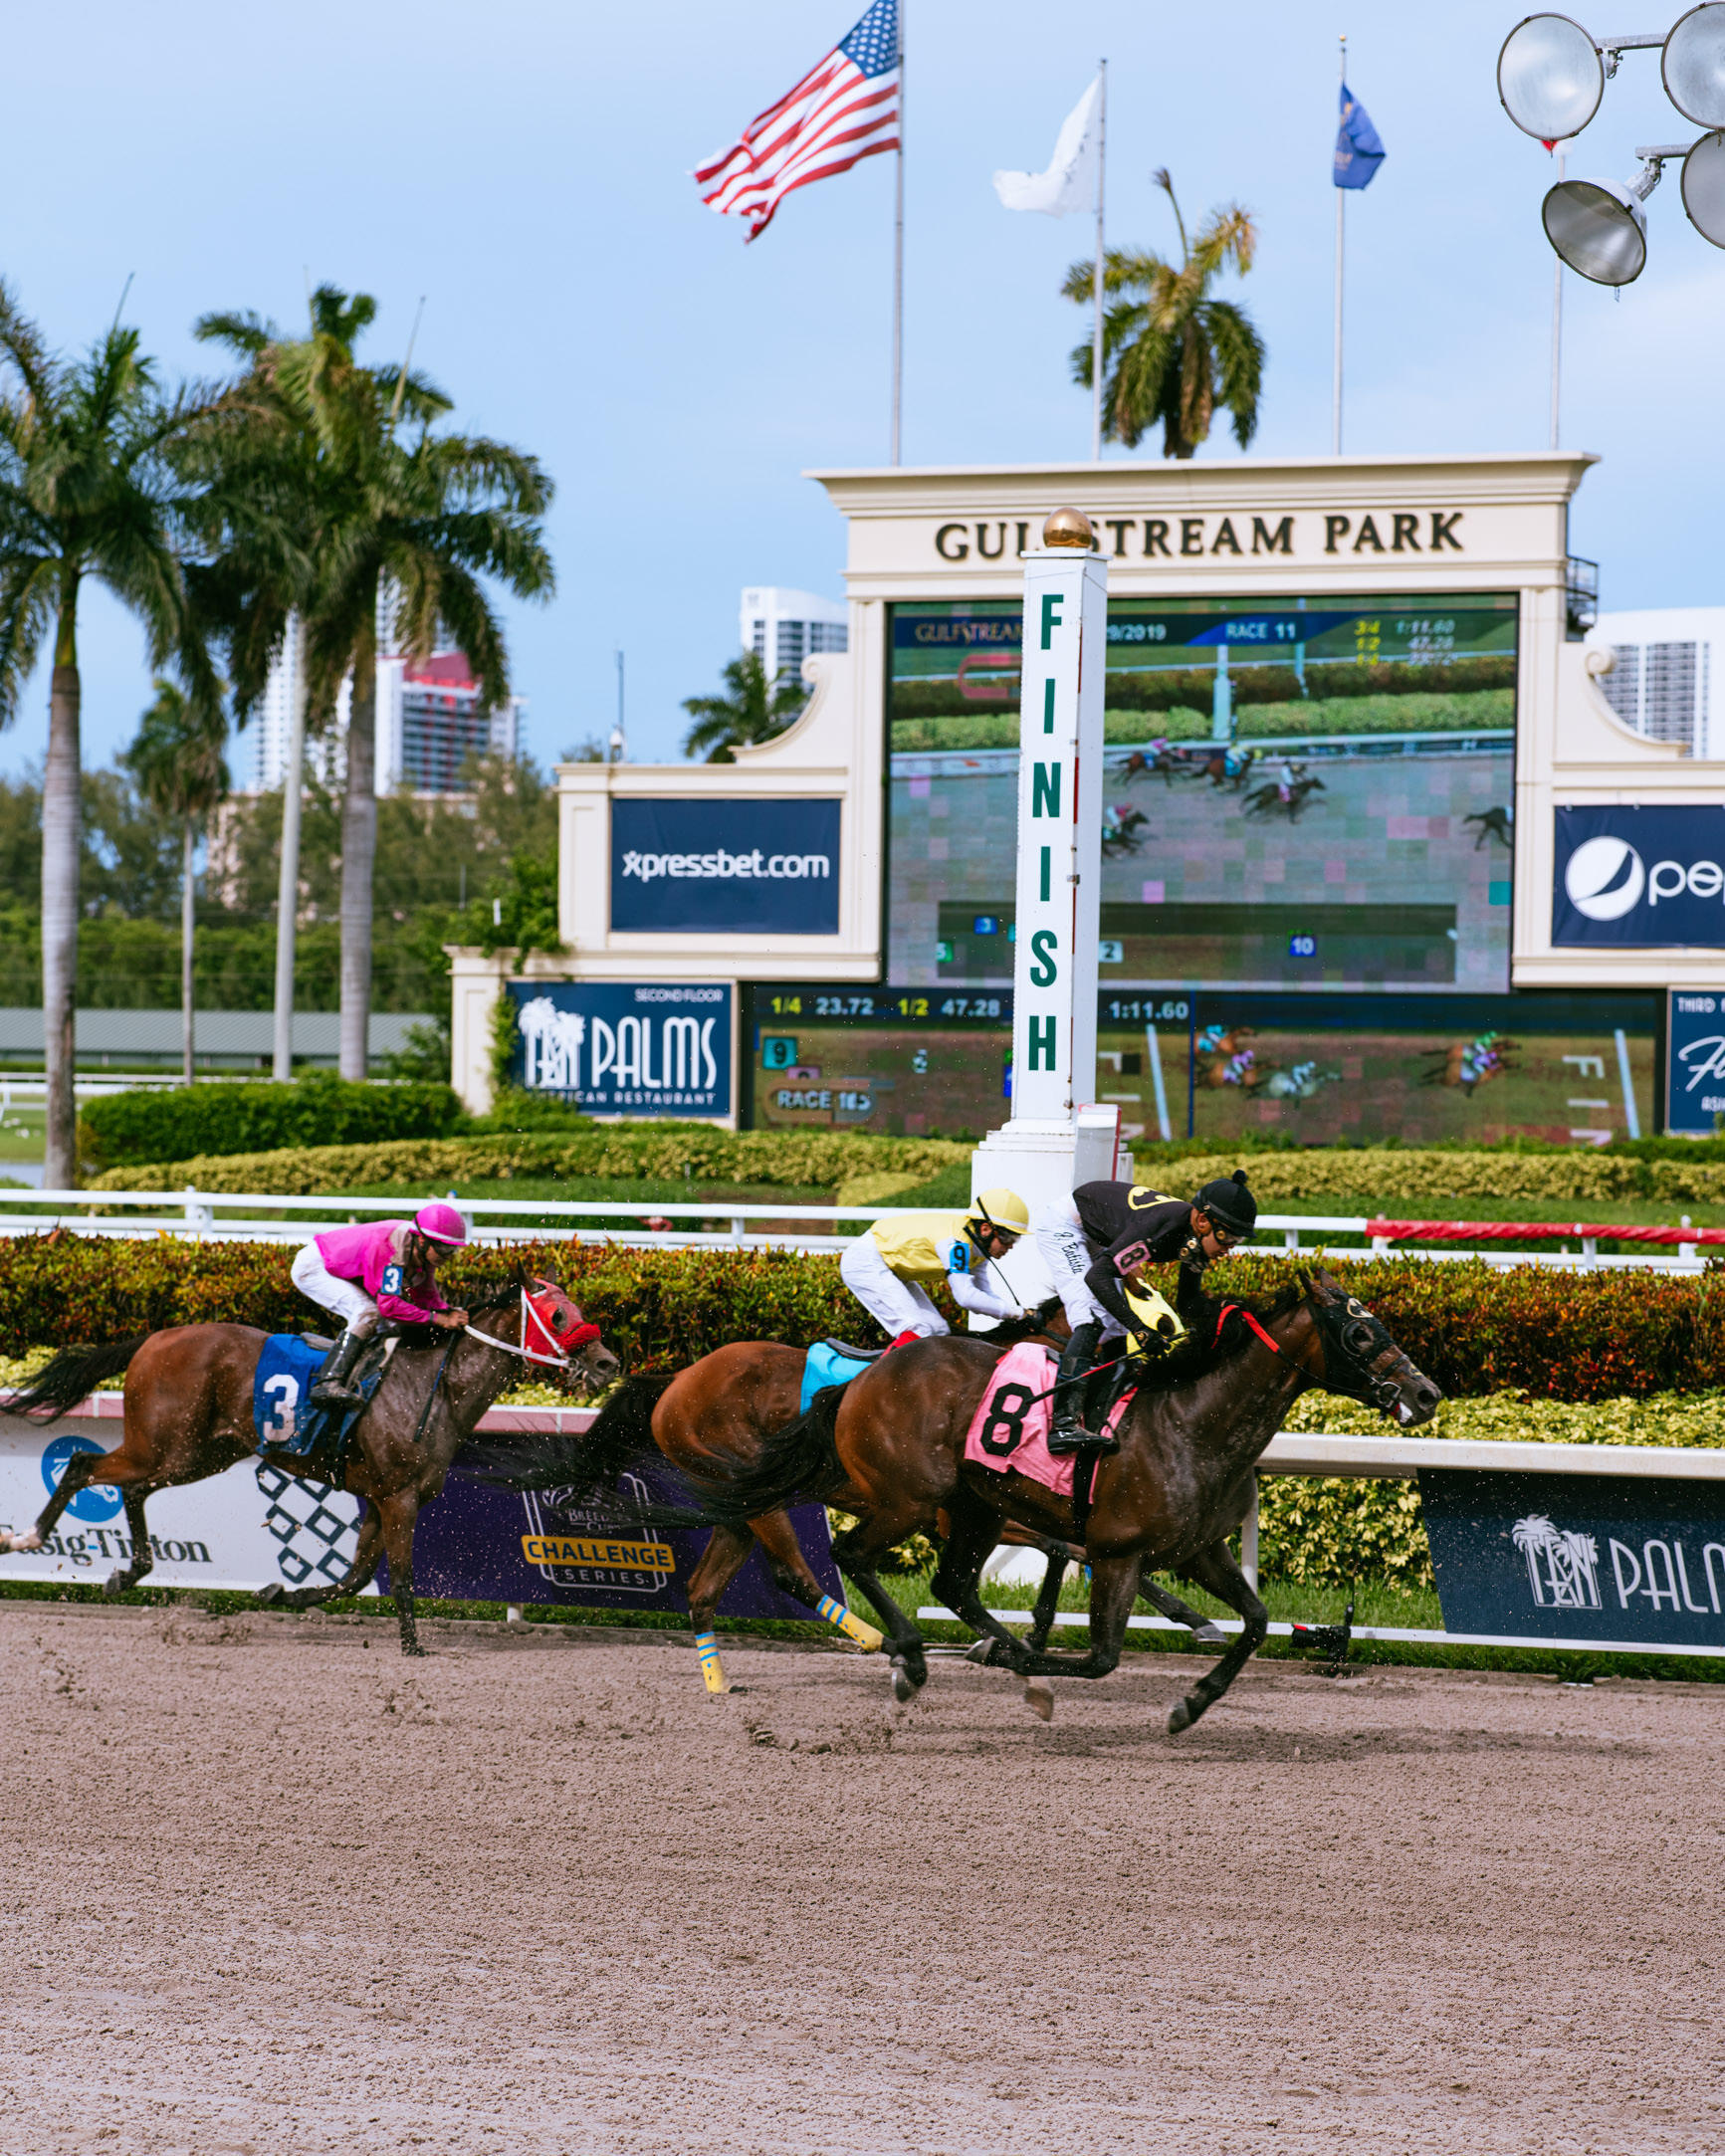 Gulfstream Park Racing and Casino events